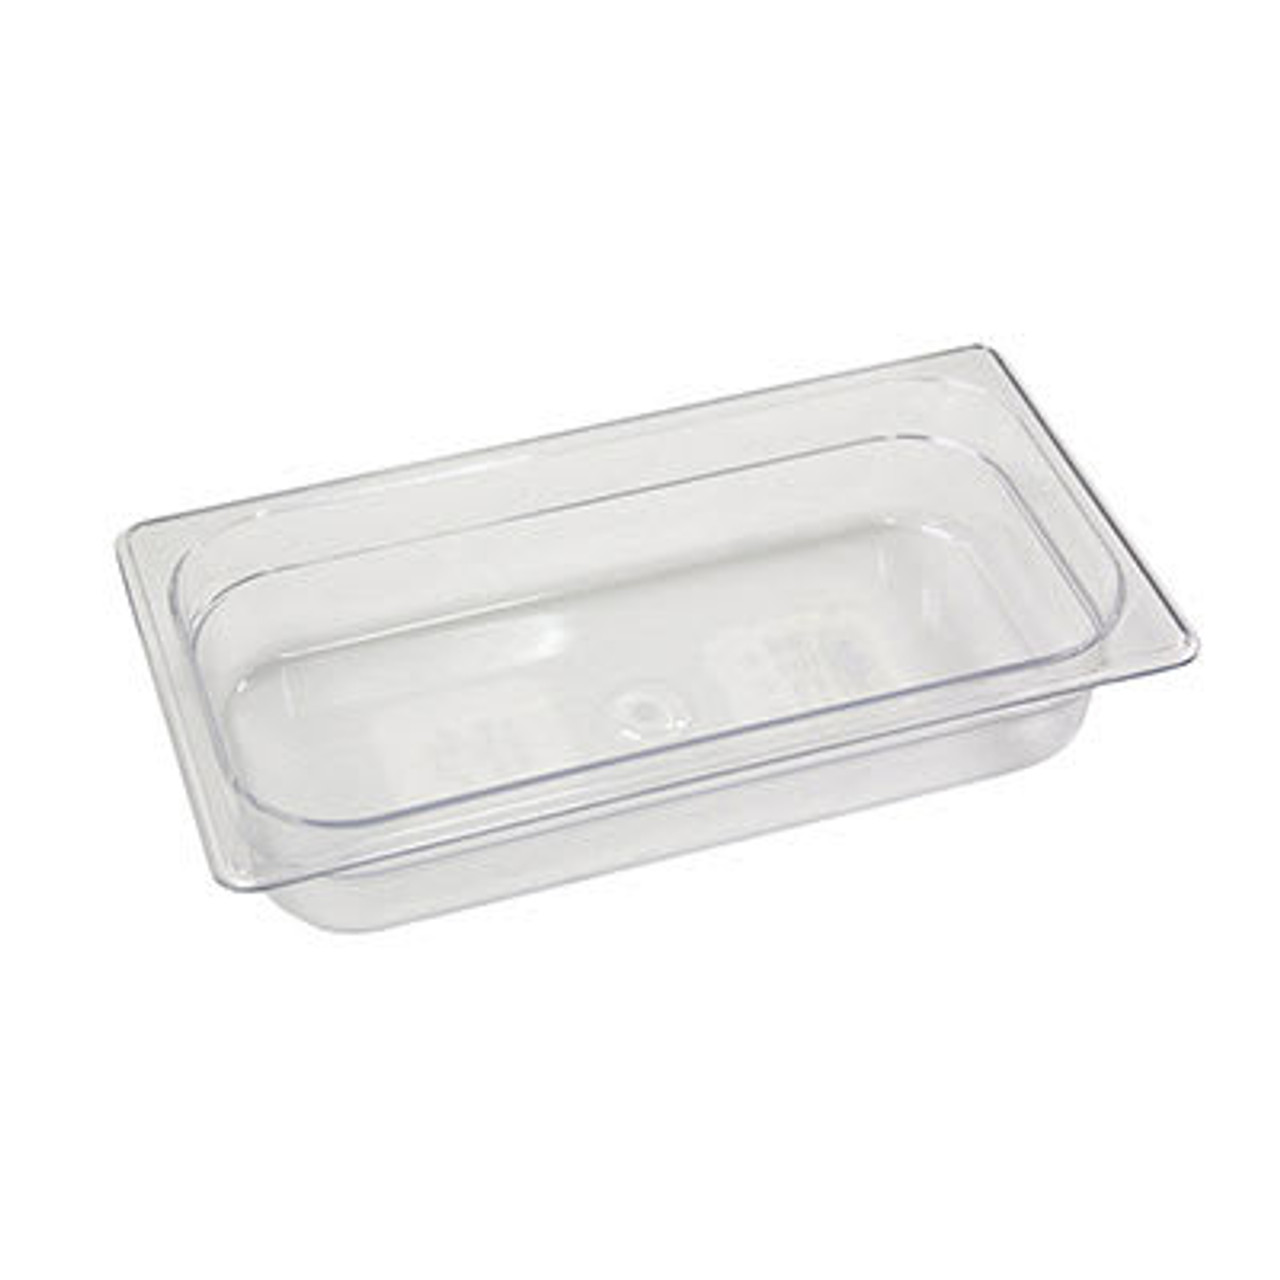 Rubbermaid Gastronorm Food Pan 1/3 65 mm